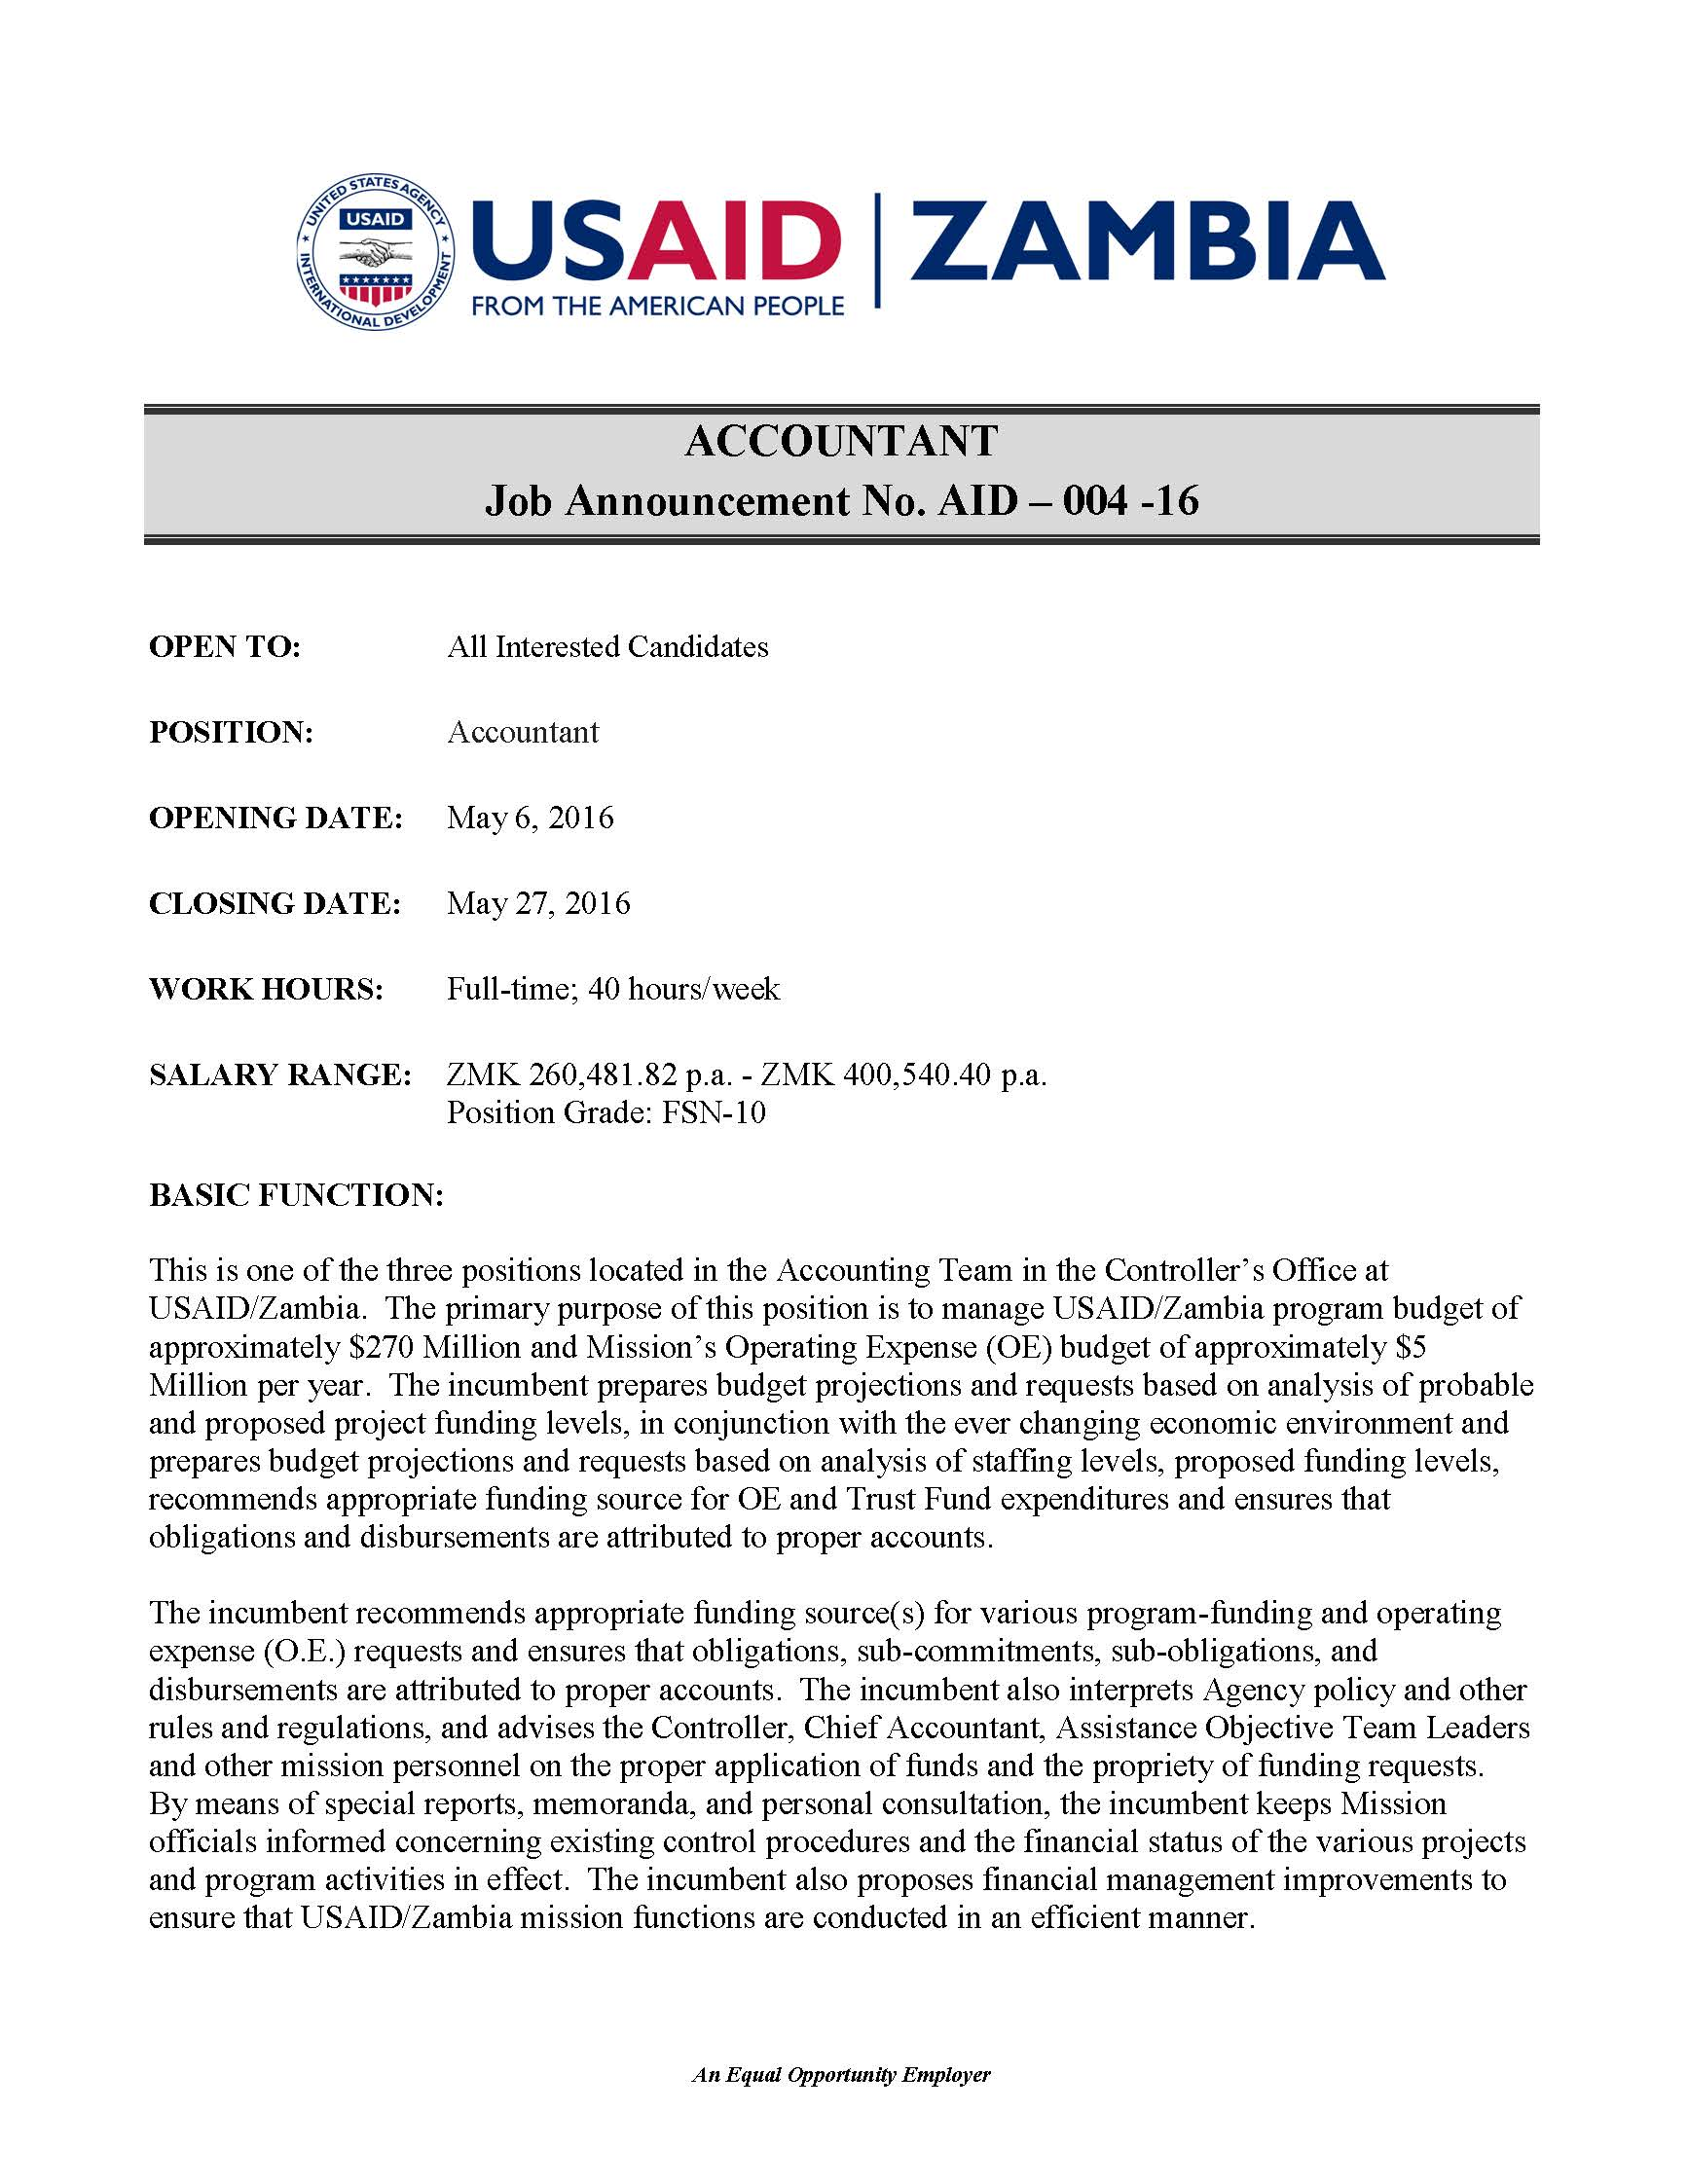 https://www.usaid.gov/sites/default/files/USAID_Zambia%20Job%20Announcement-AID-004-16%20Accountant_0.jpg